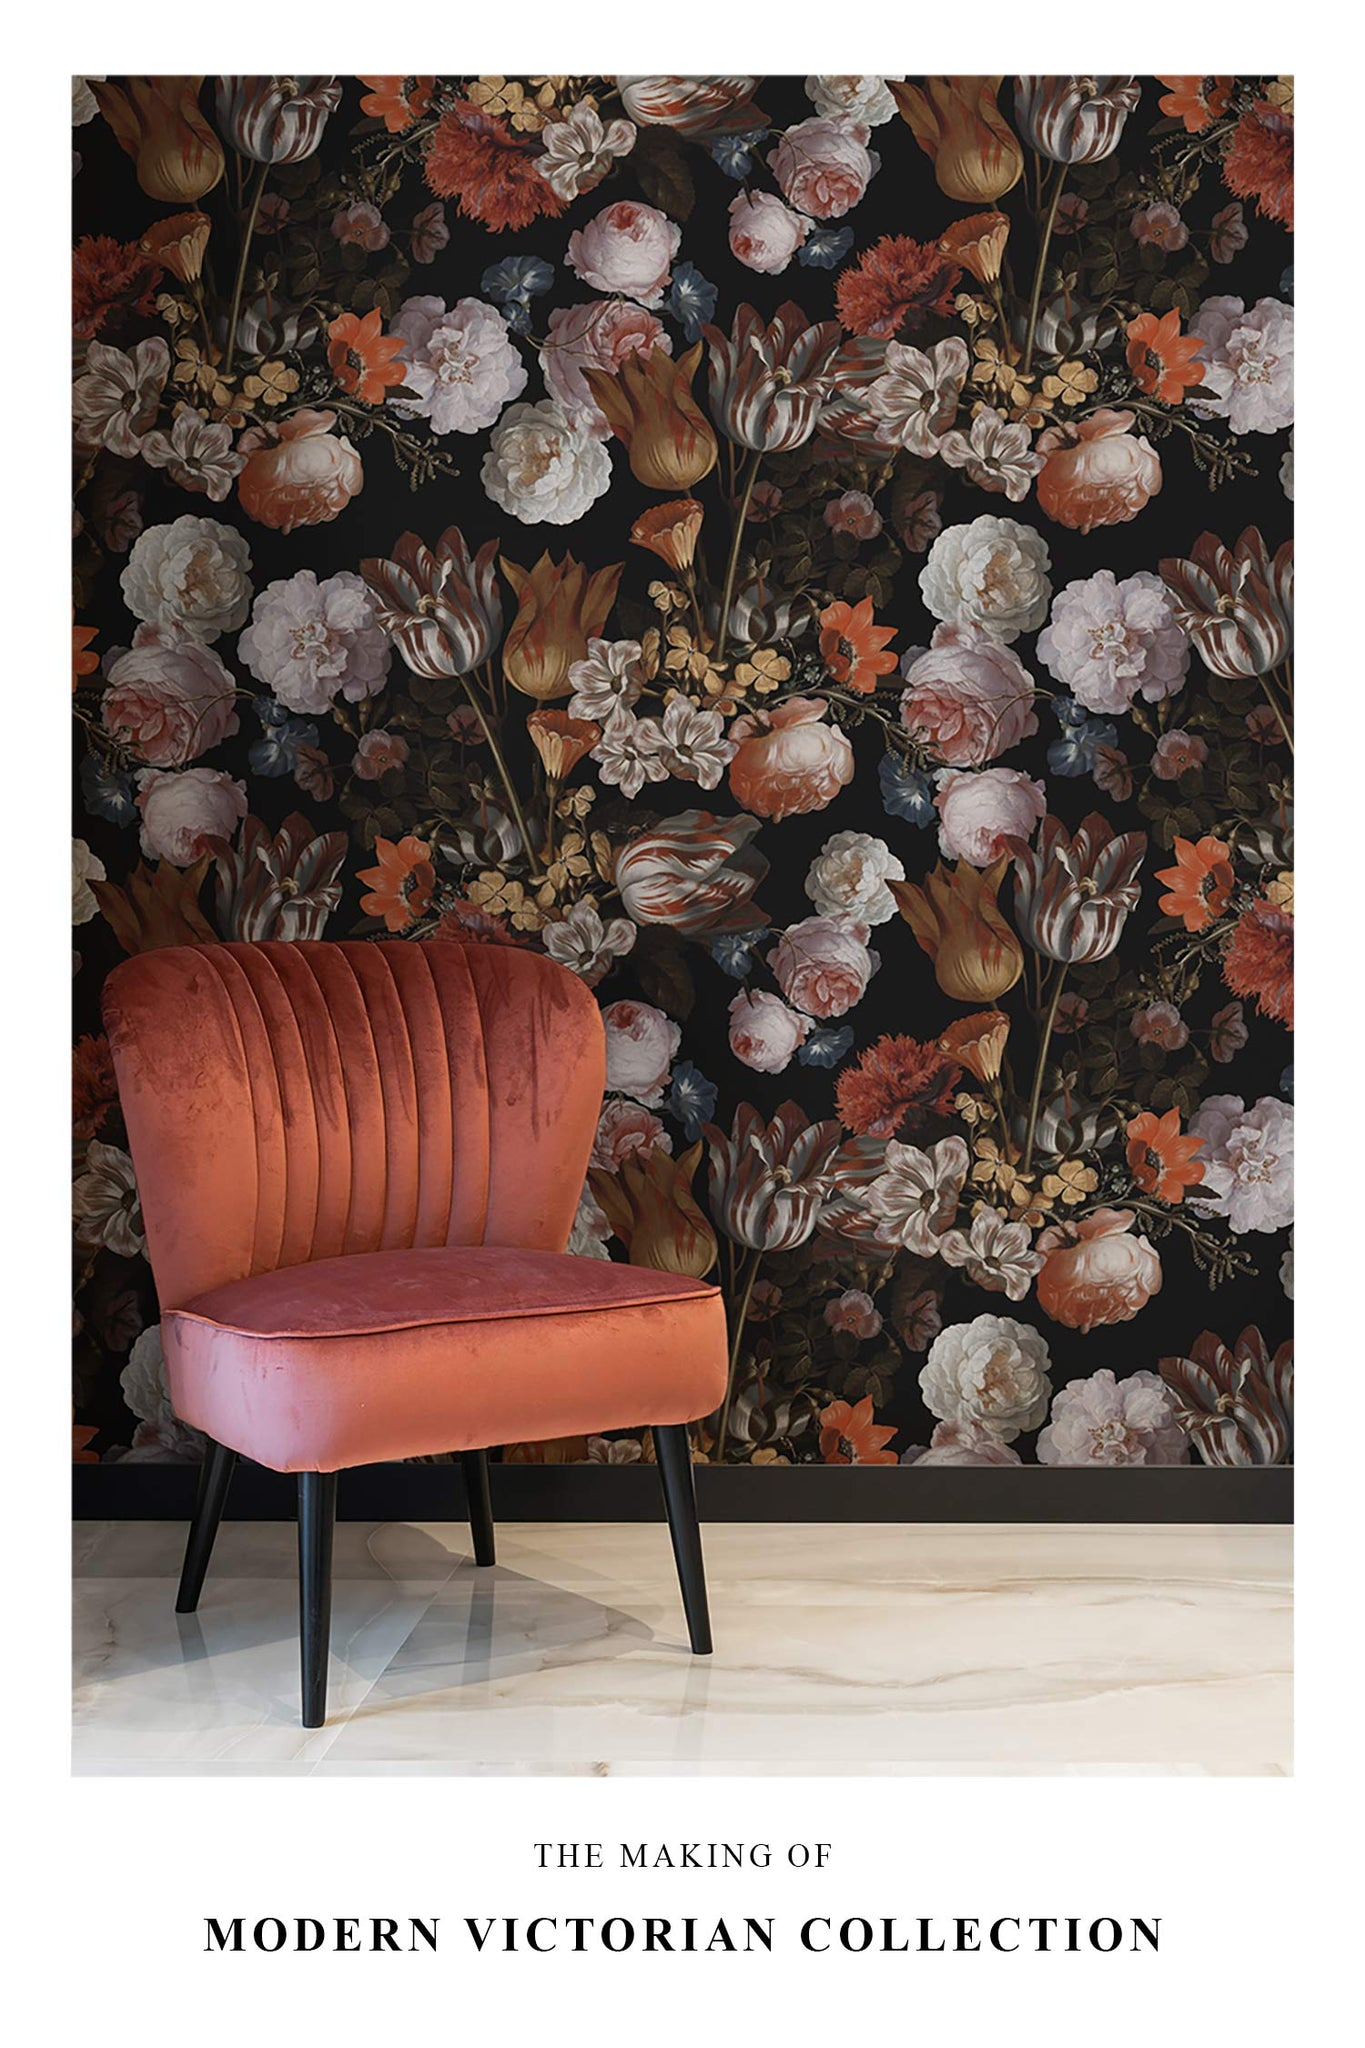 Modern victorian floral wallpaper and coral color chair